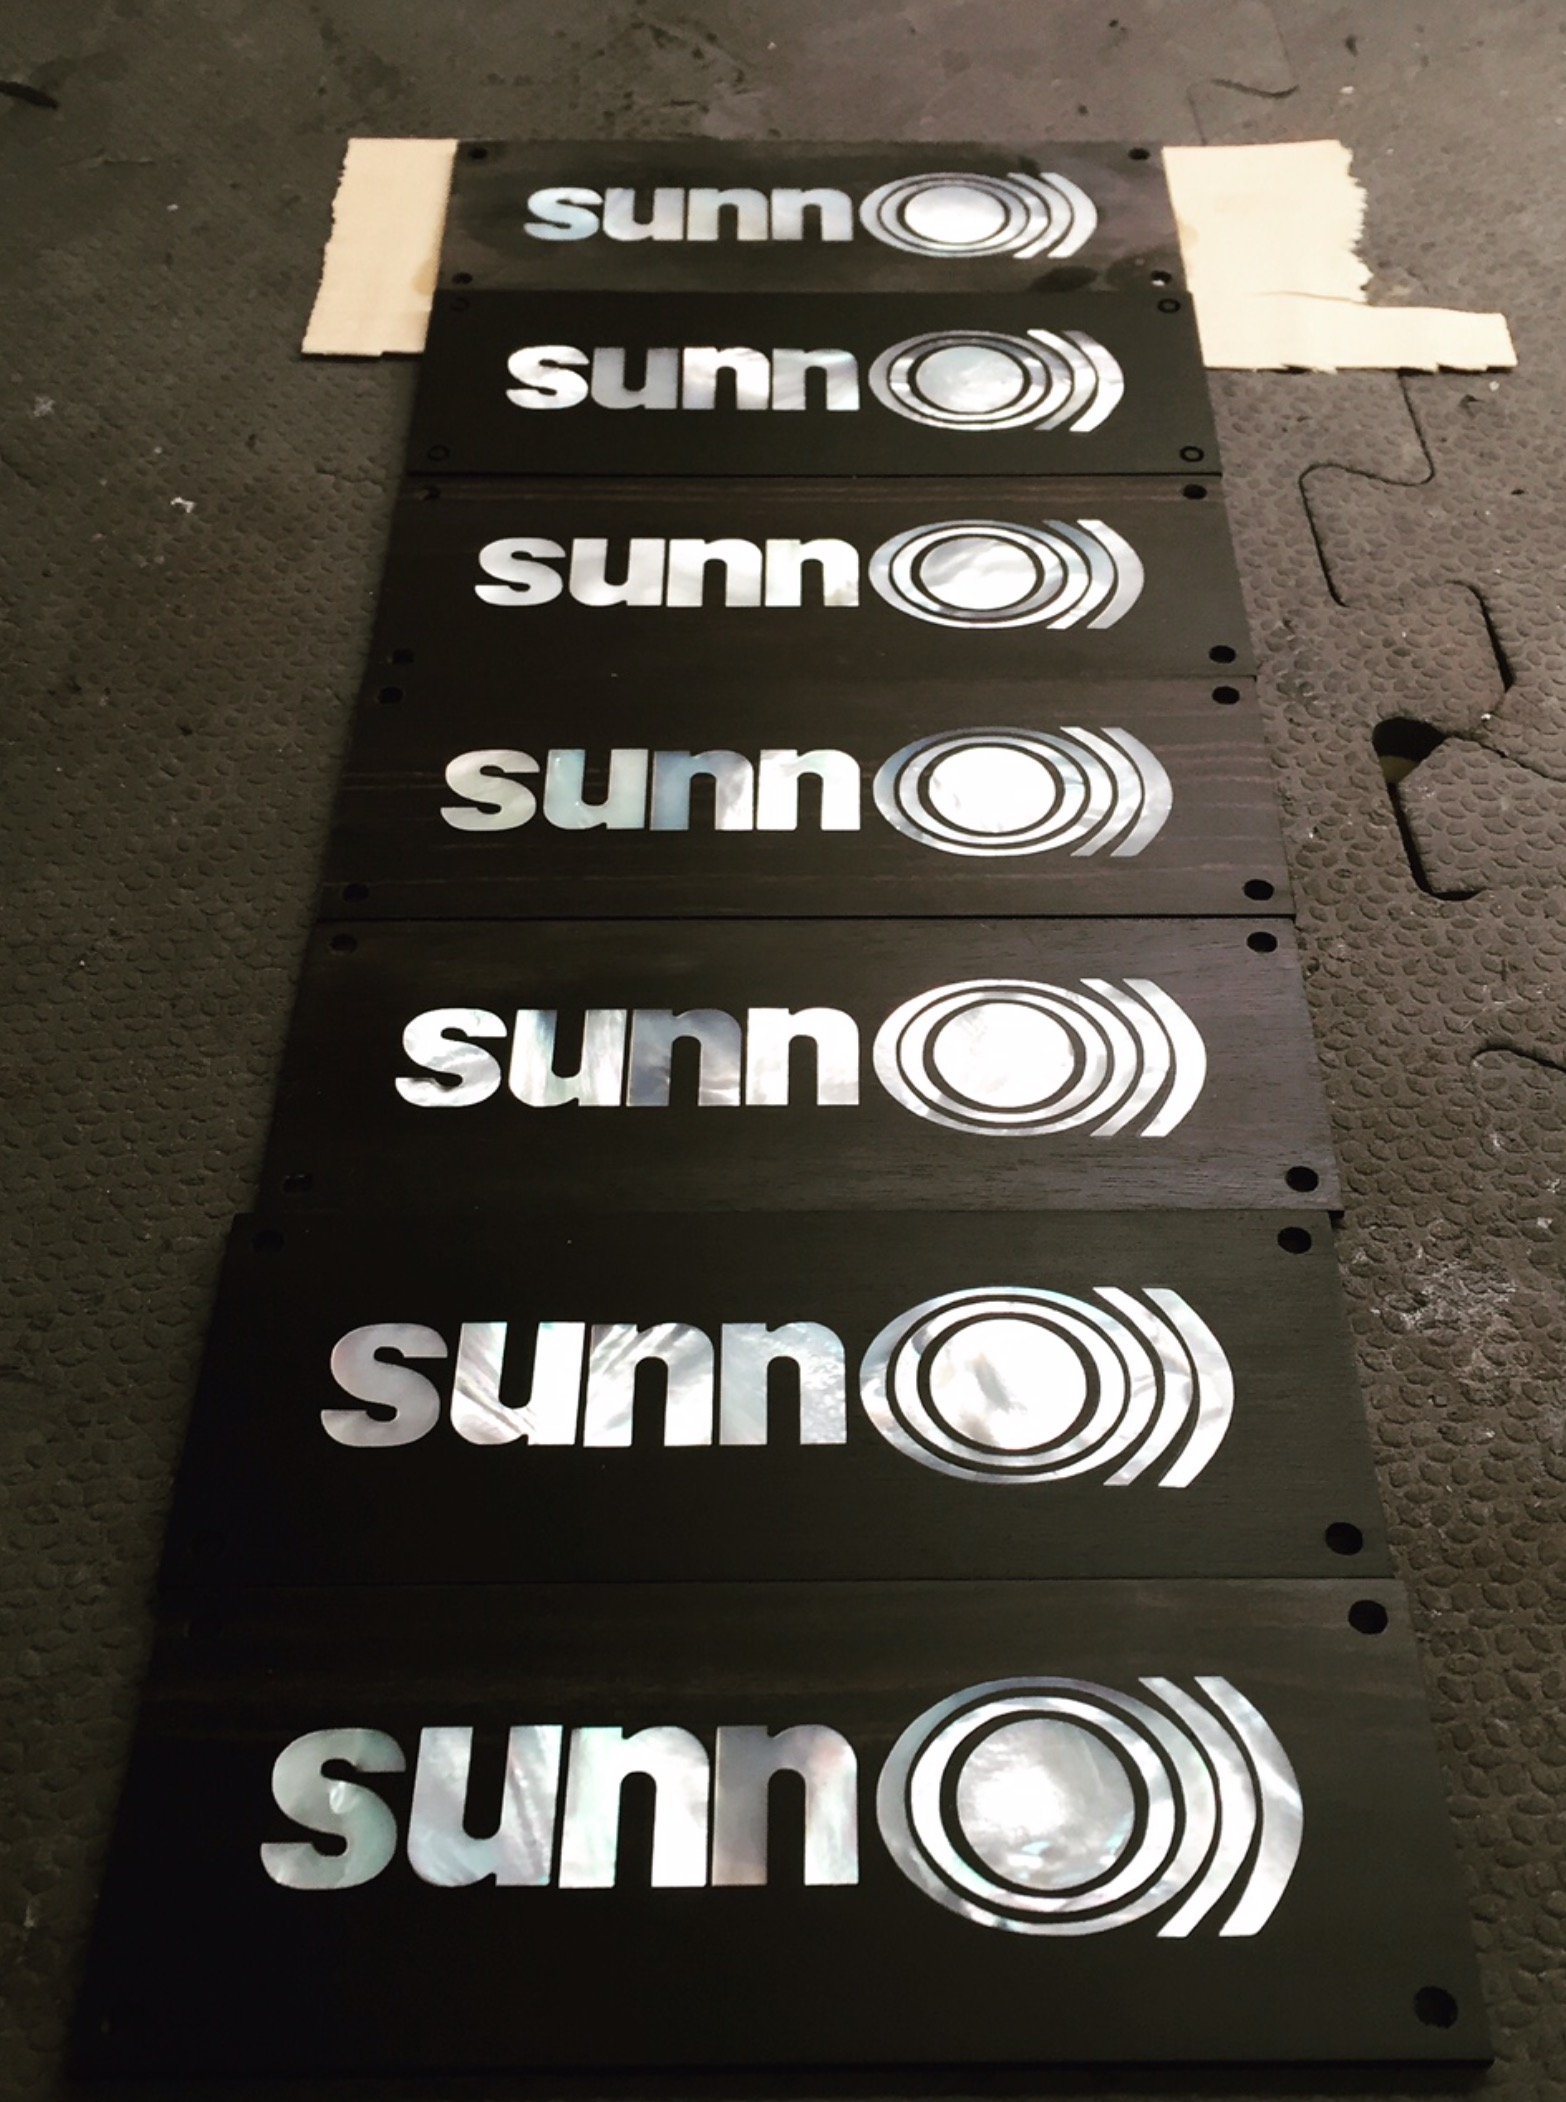 SUNN O))) mother of pearl nameplates